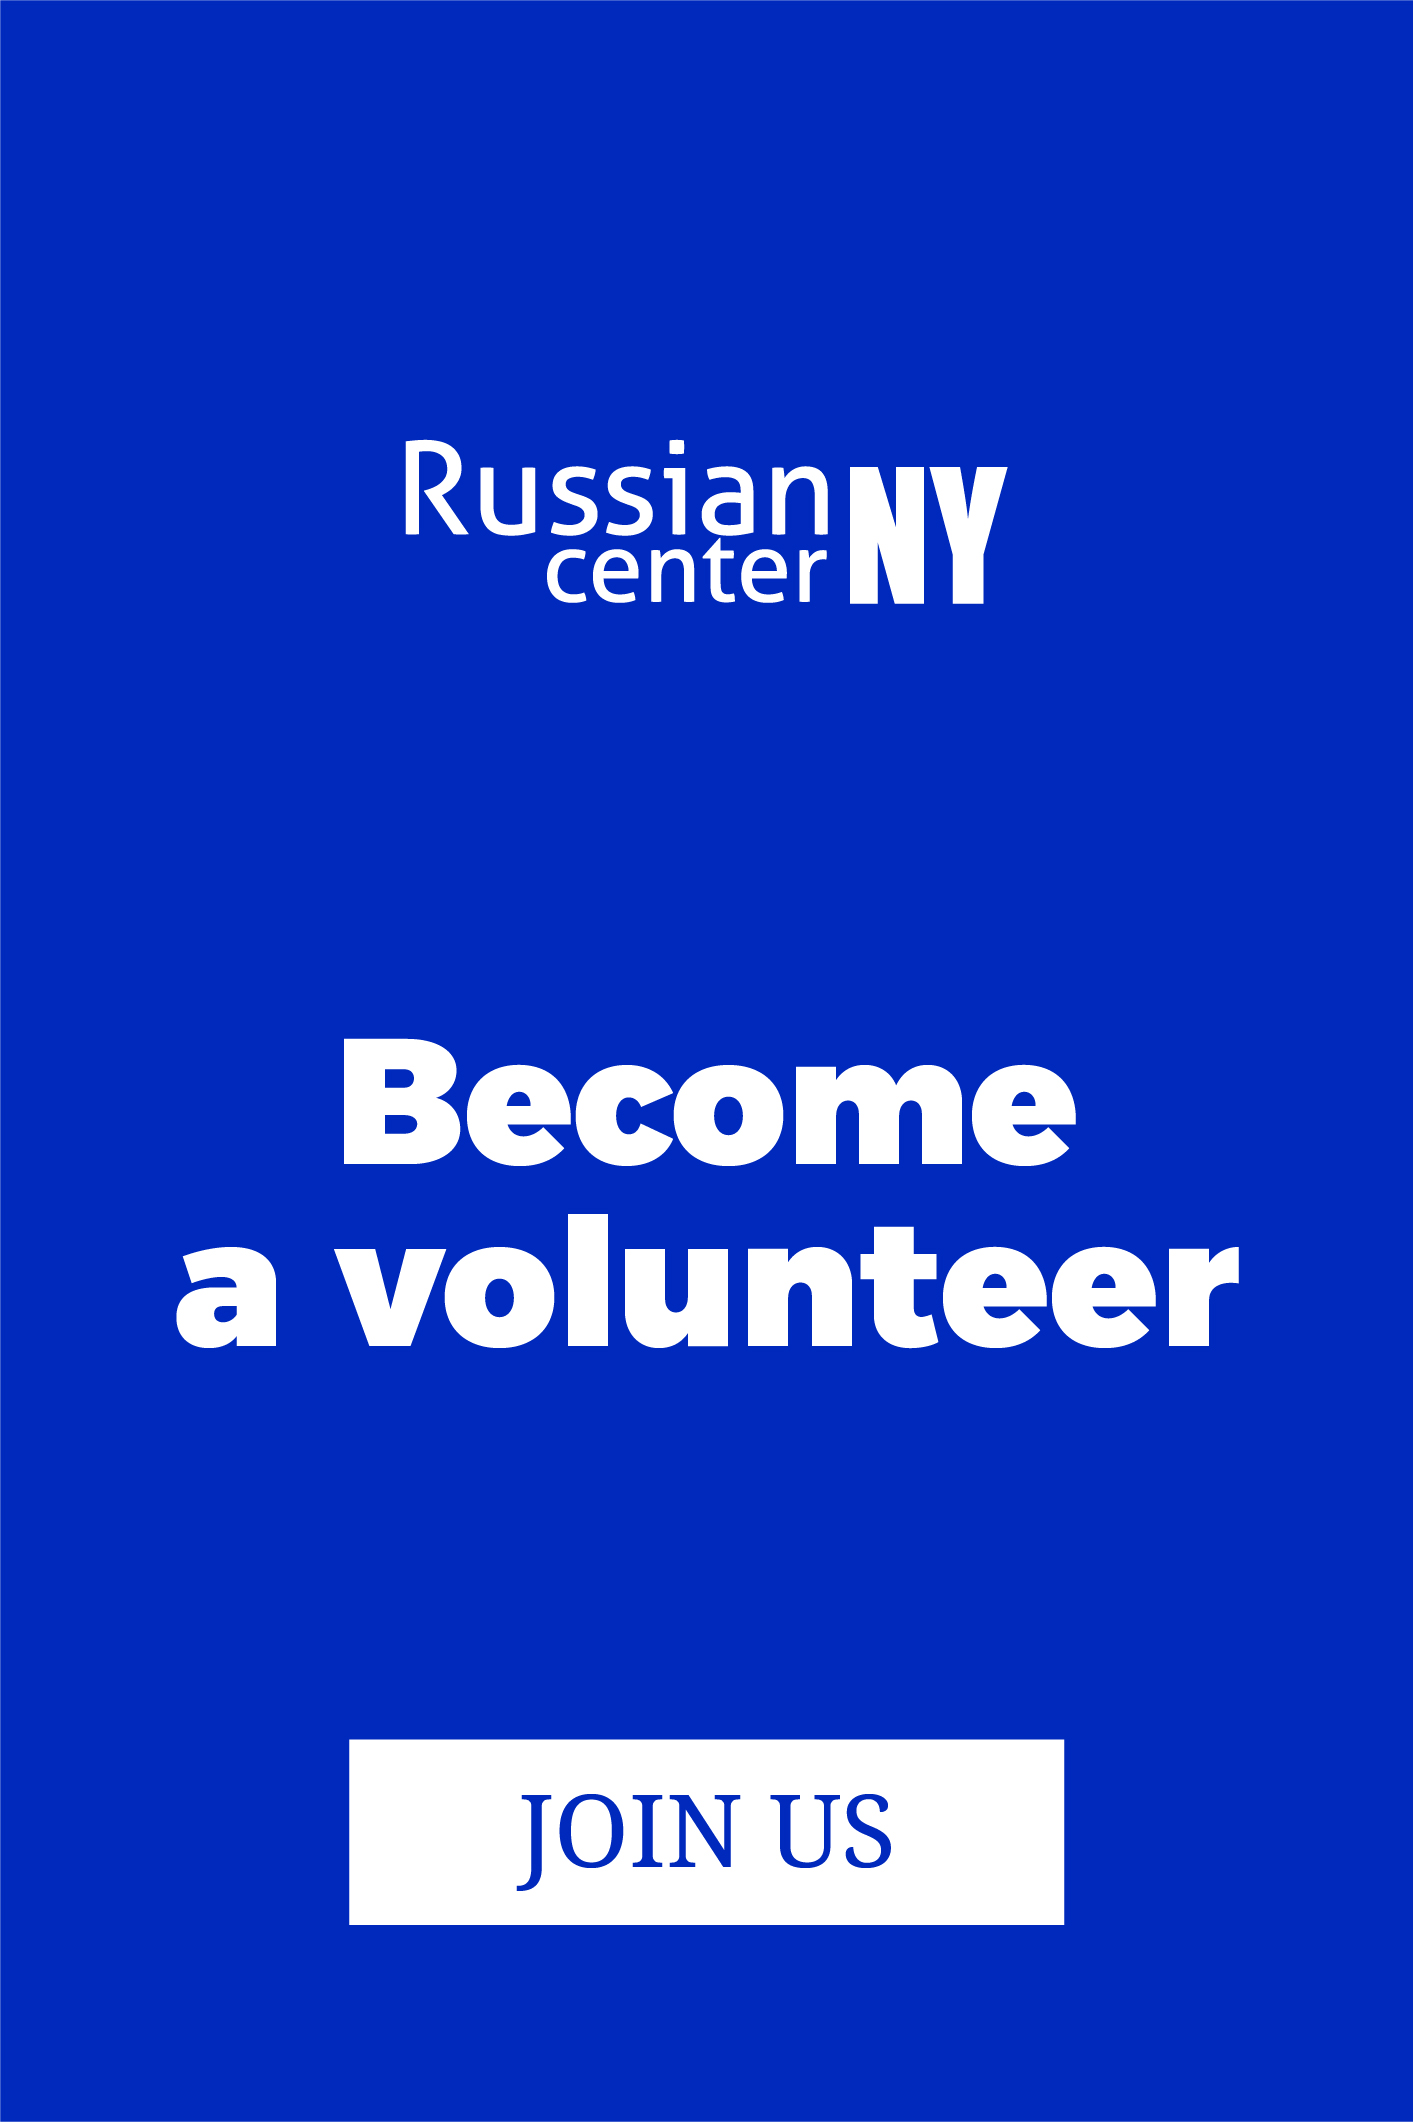 RCNY-volunteer-banner-blue